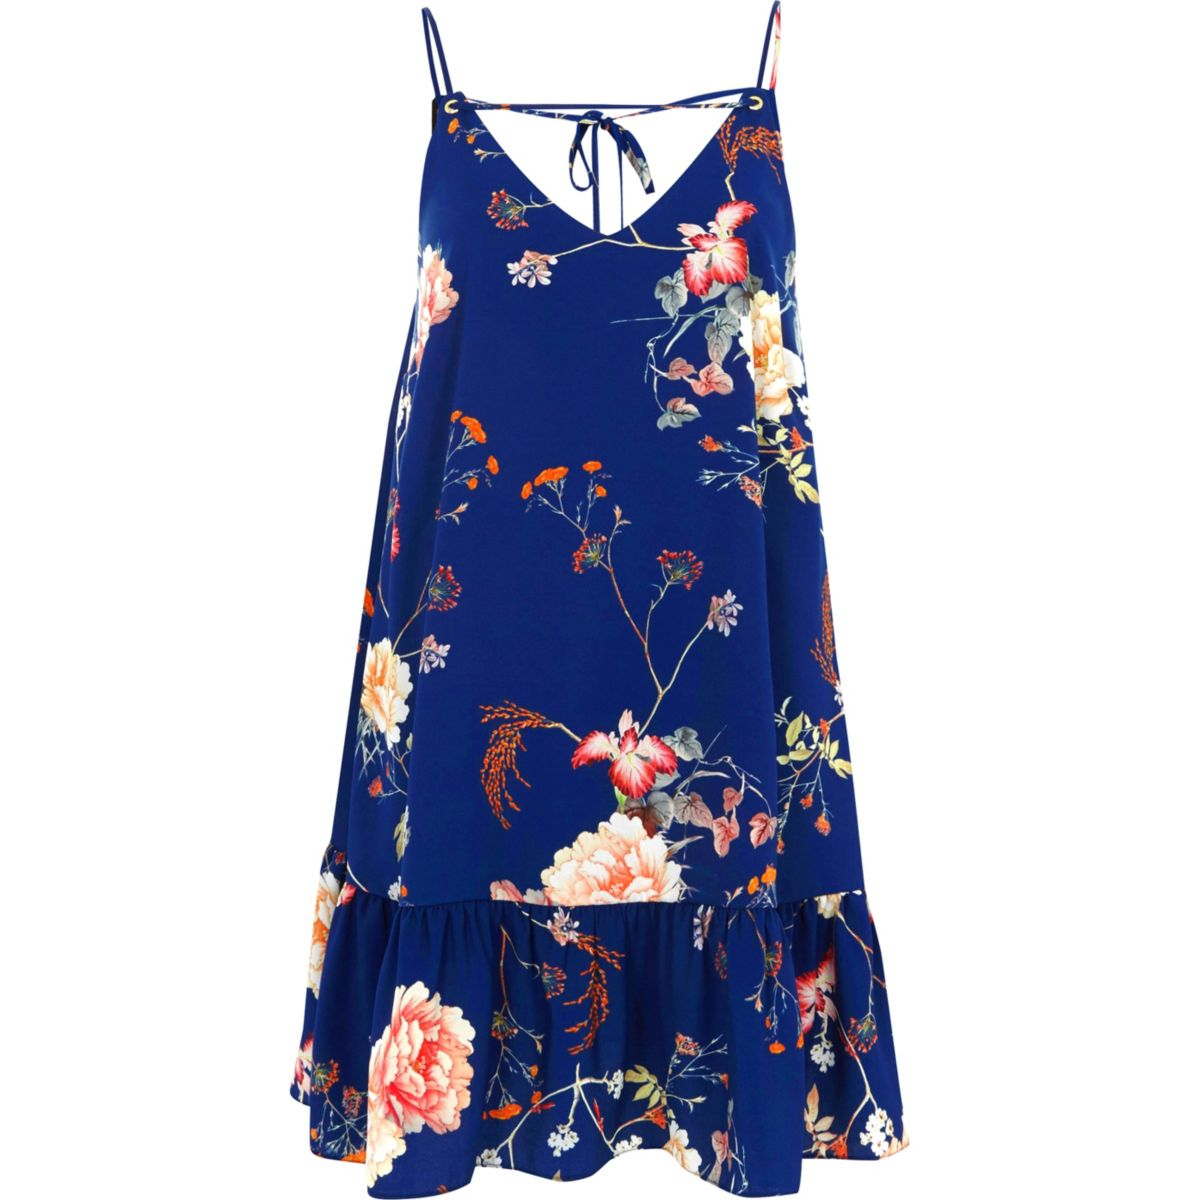 Blue Floral Frill Hem Cami Dress Dresses Sale Women